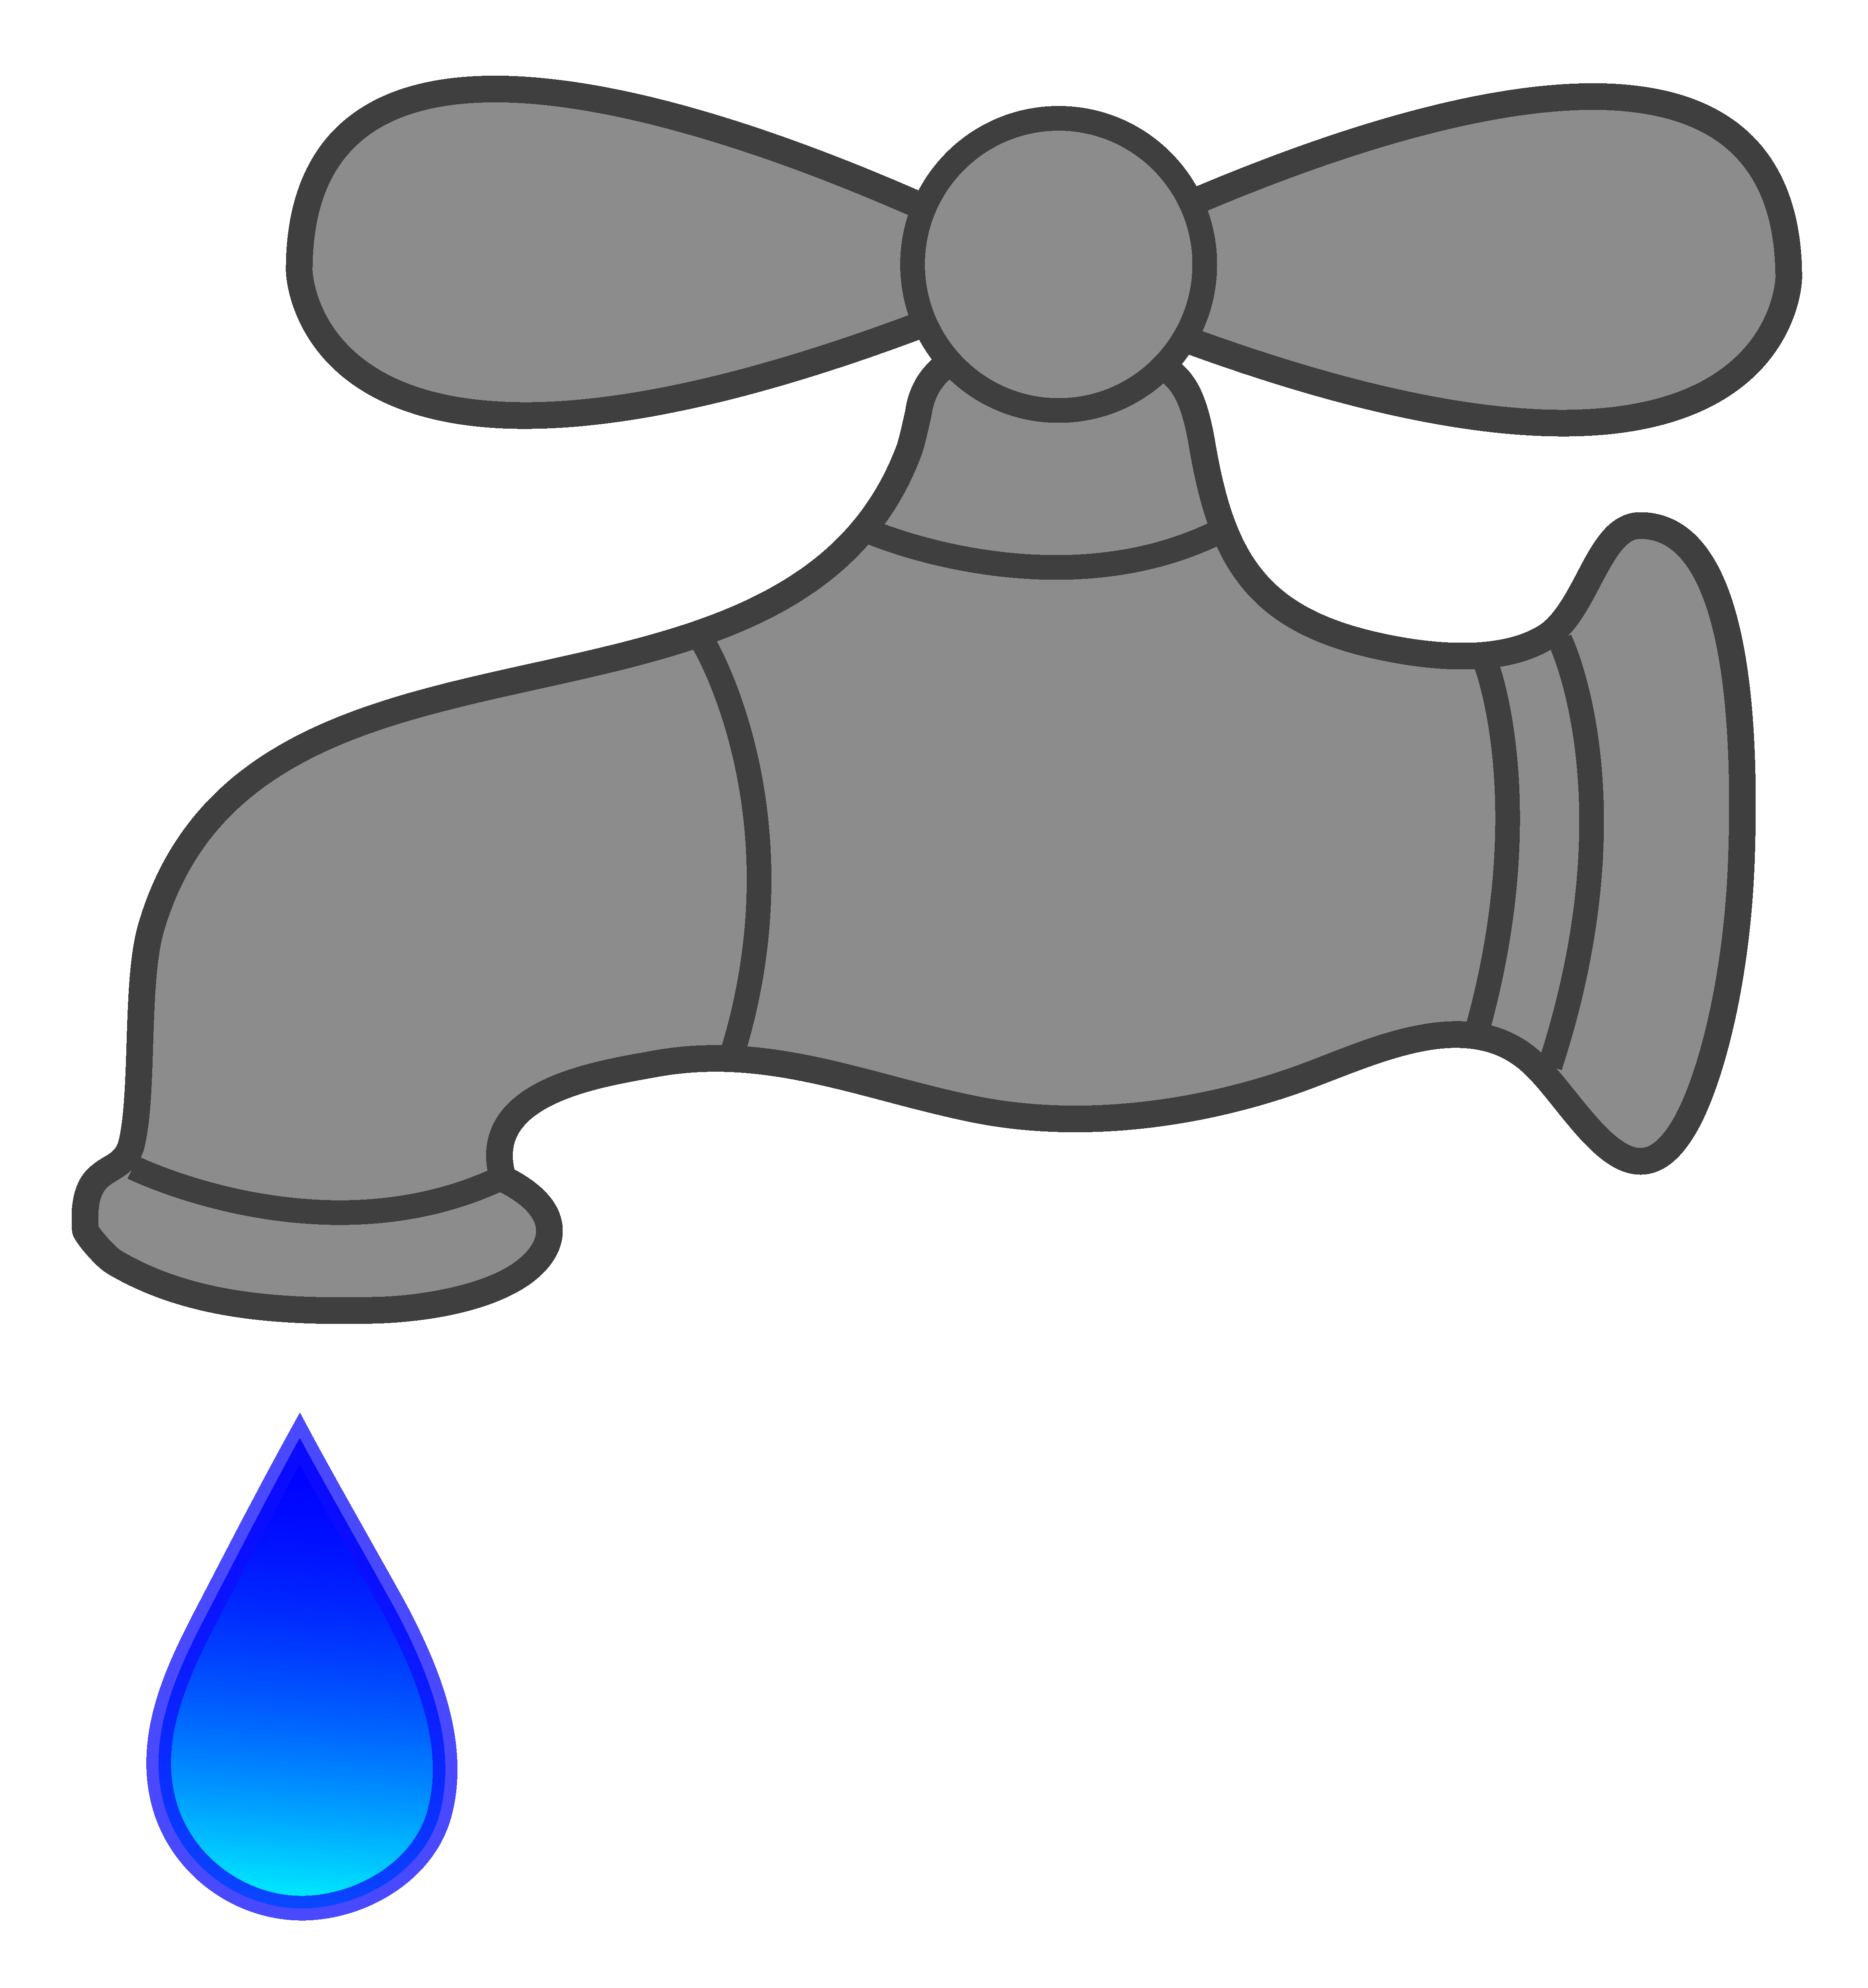 Faucet clipart. Water dripping free clip